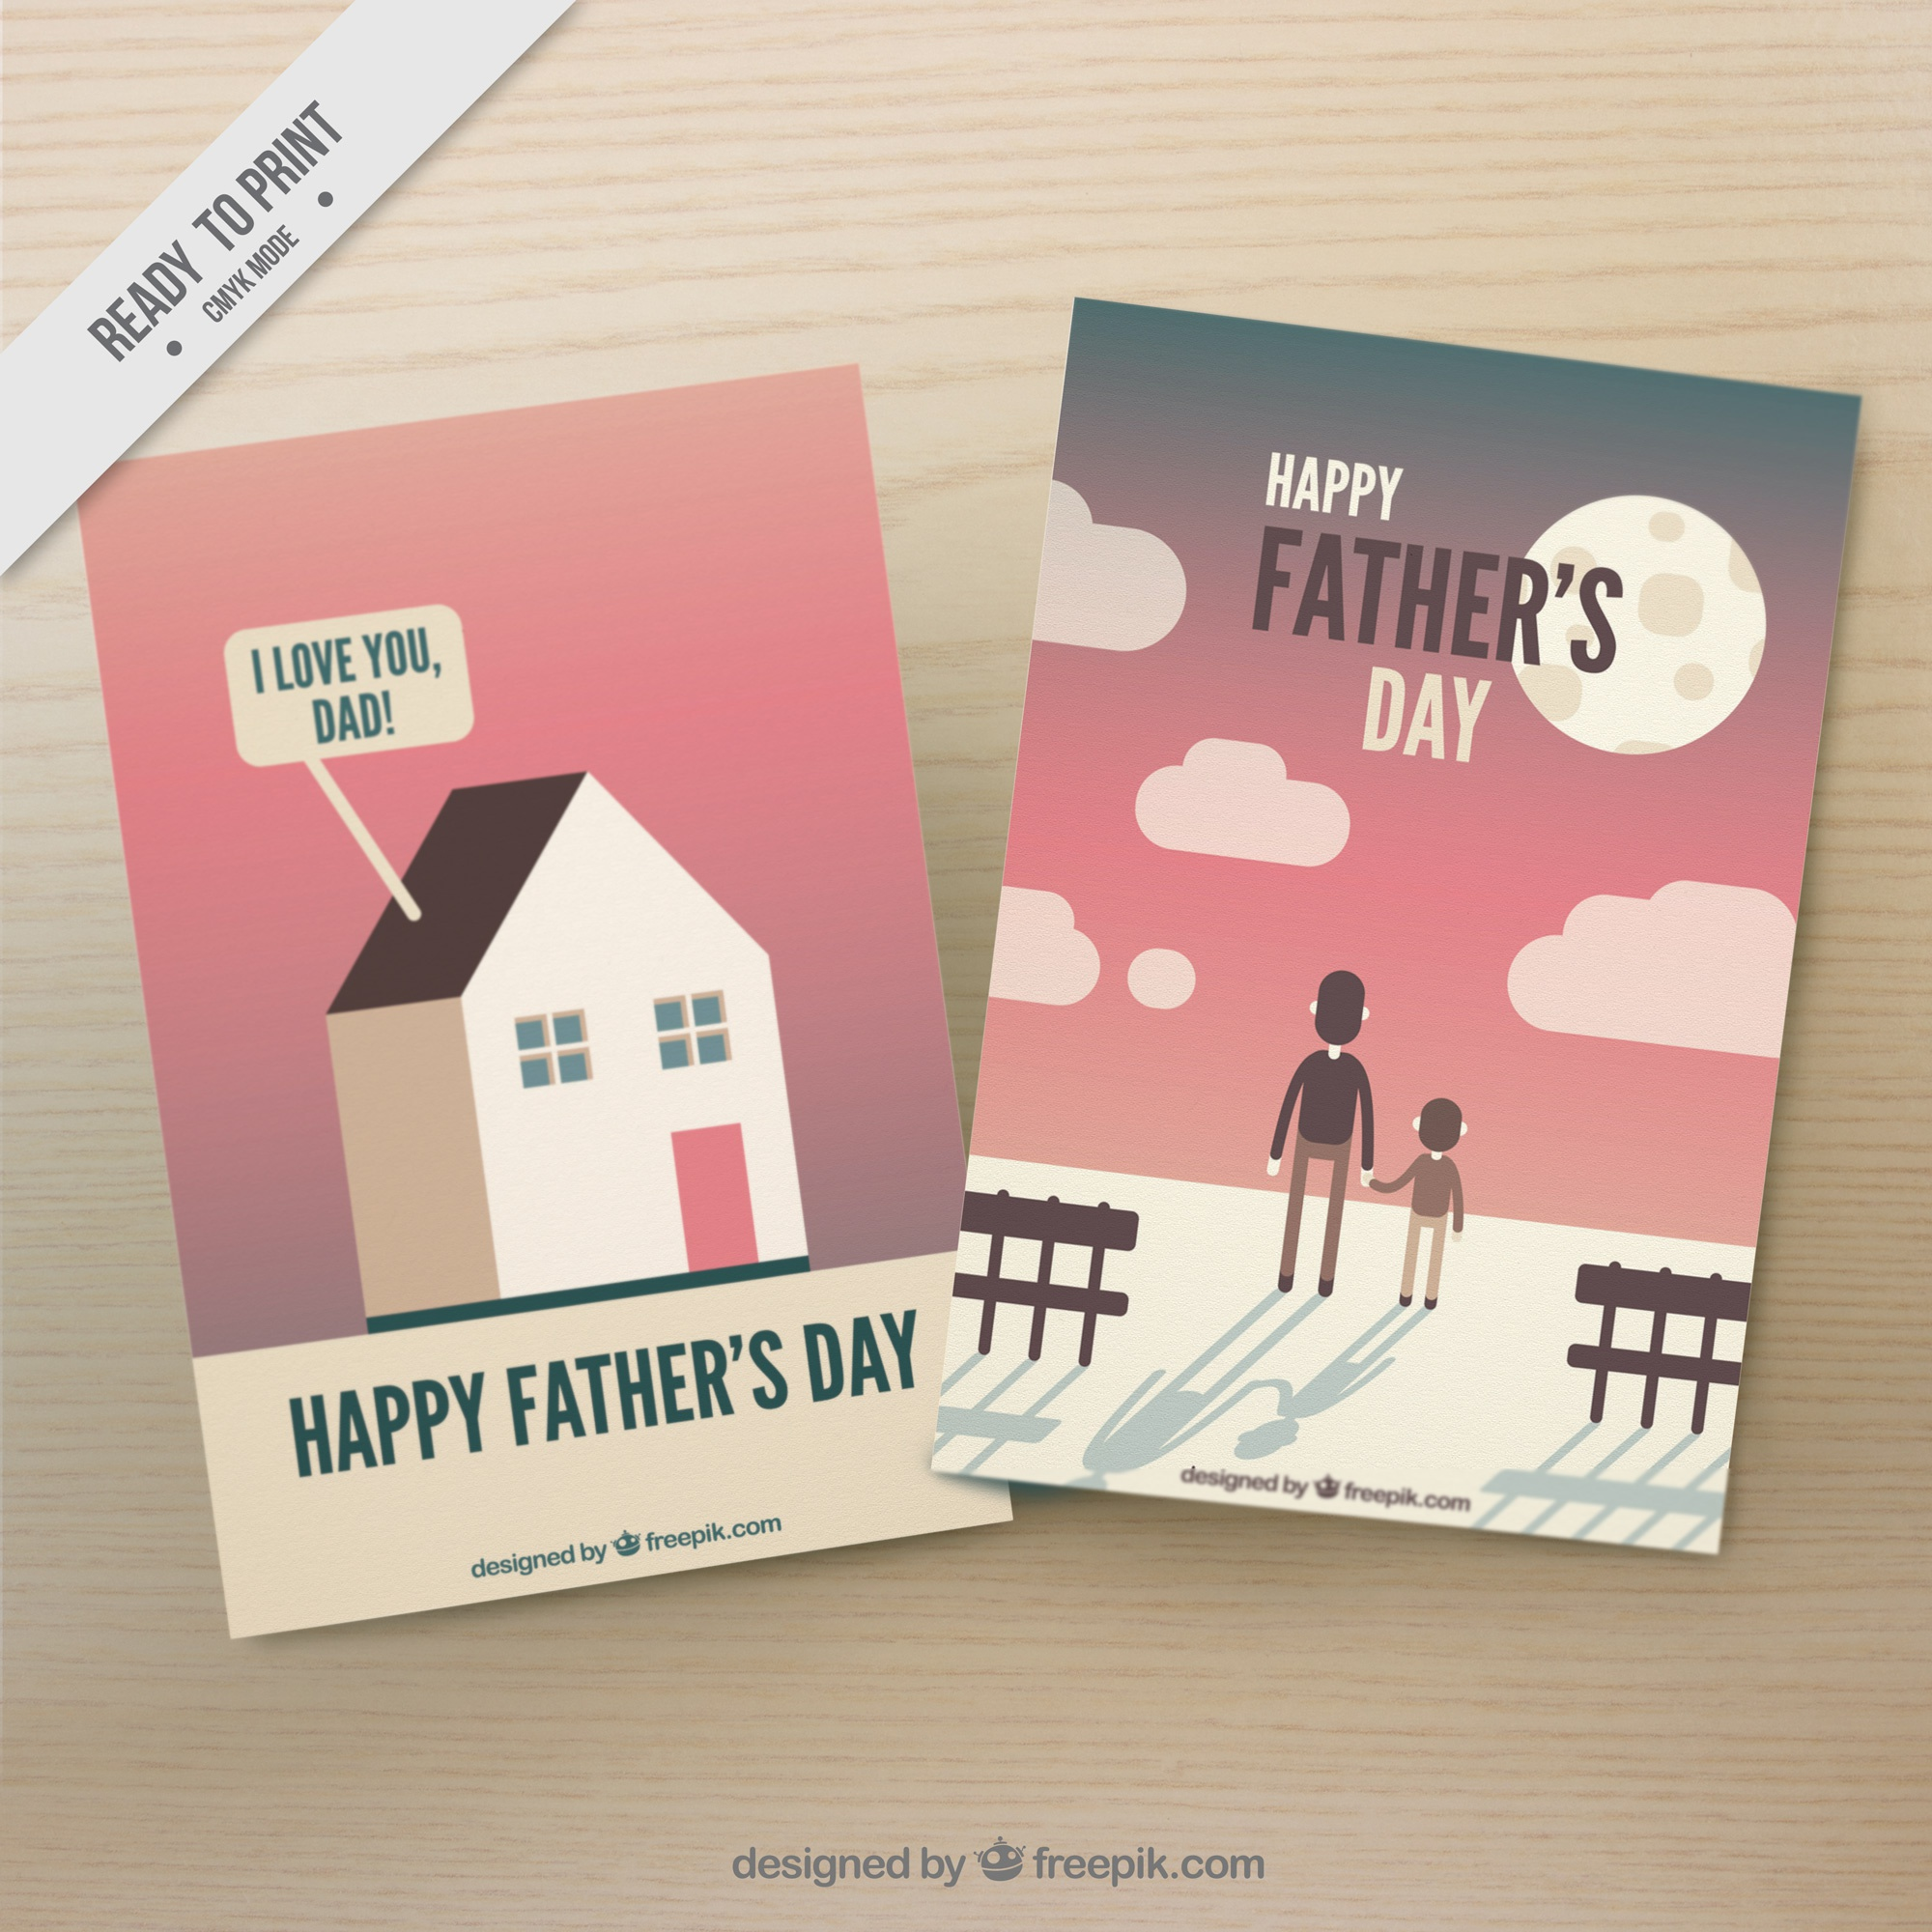 Decorative greeting cards in flat design for father's day